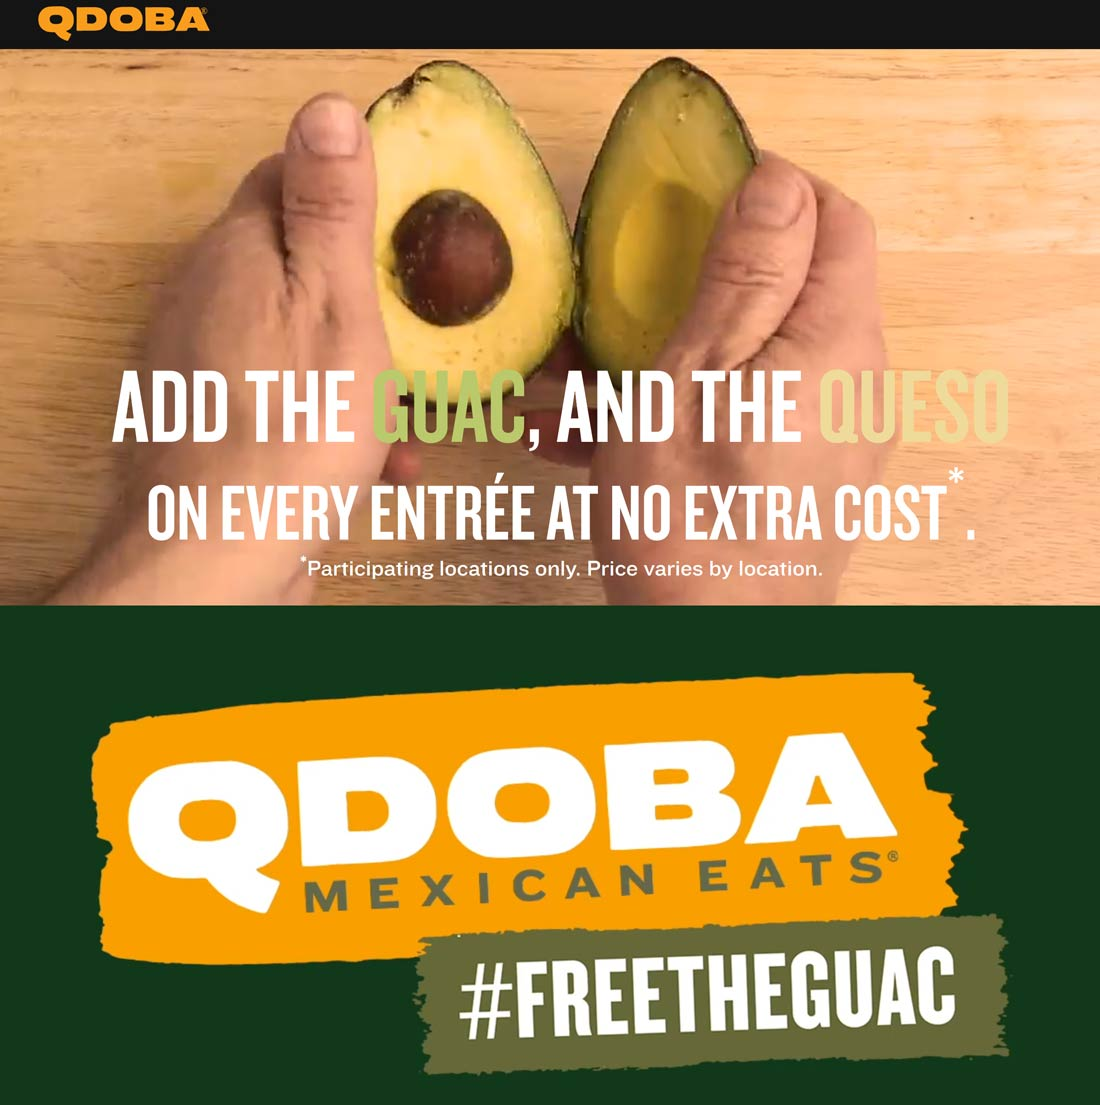 Qdoba Coupon September 2019 Guacamole & queso are free with your entree at Qdoba